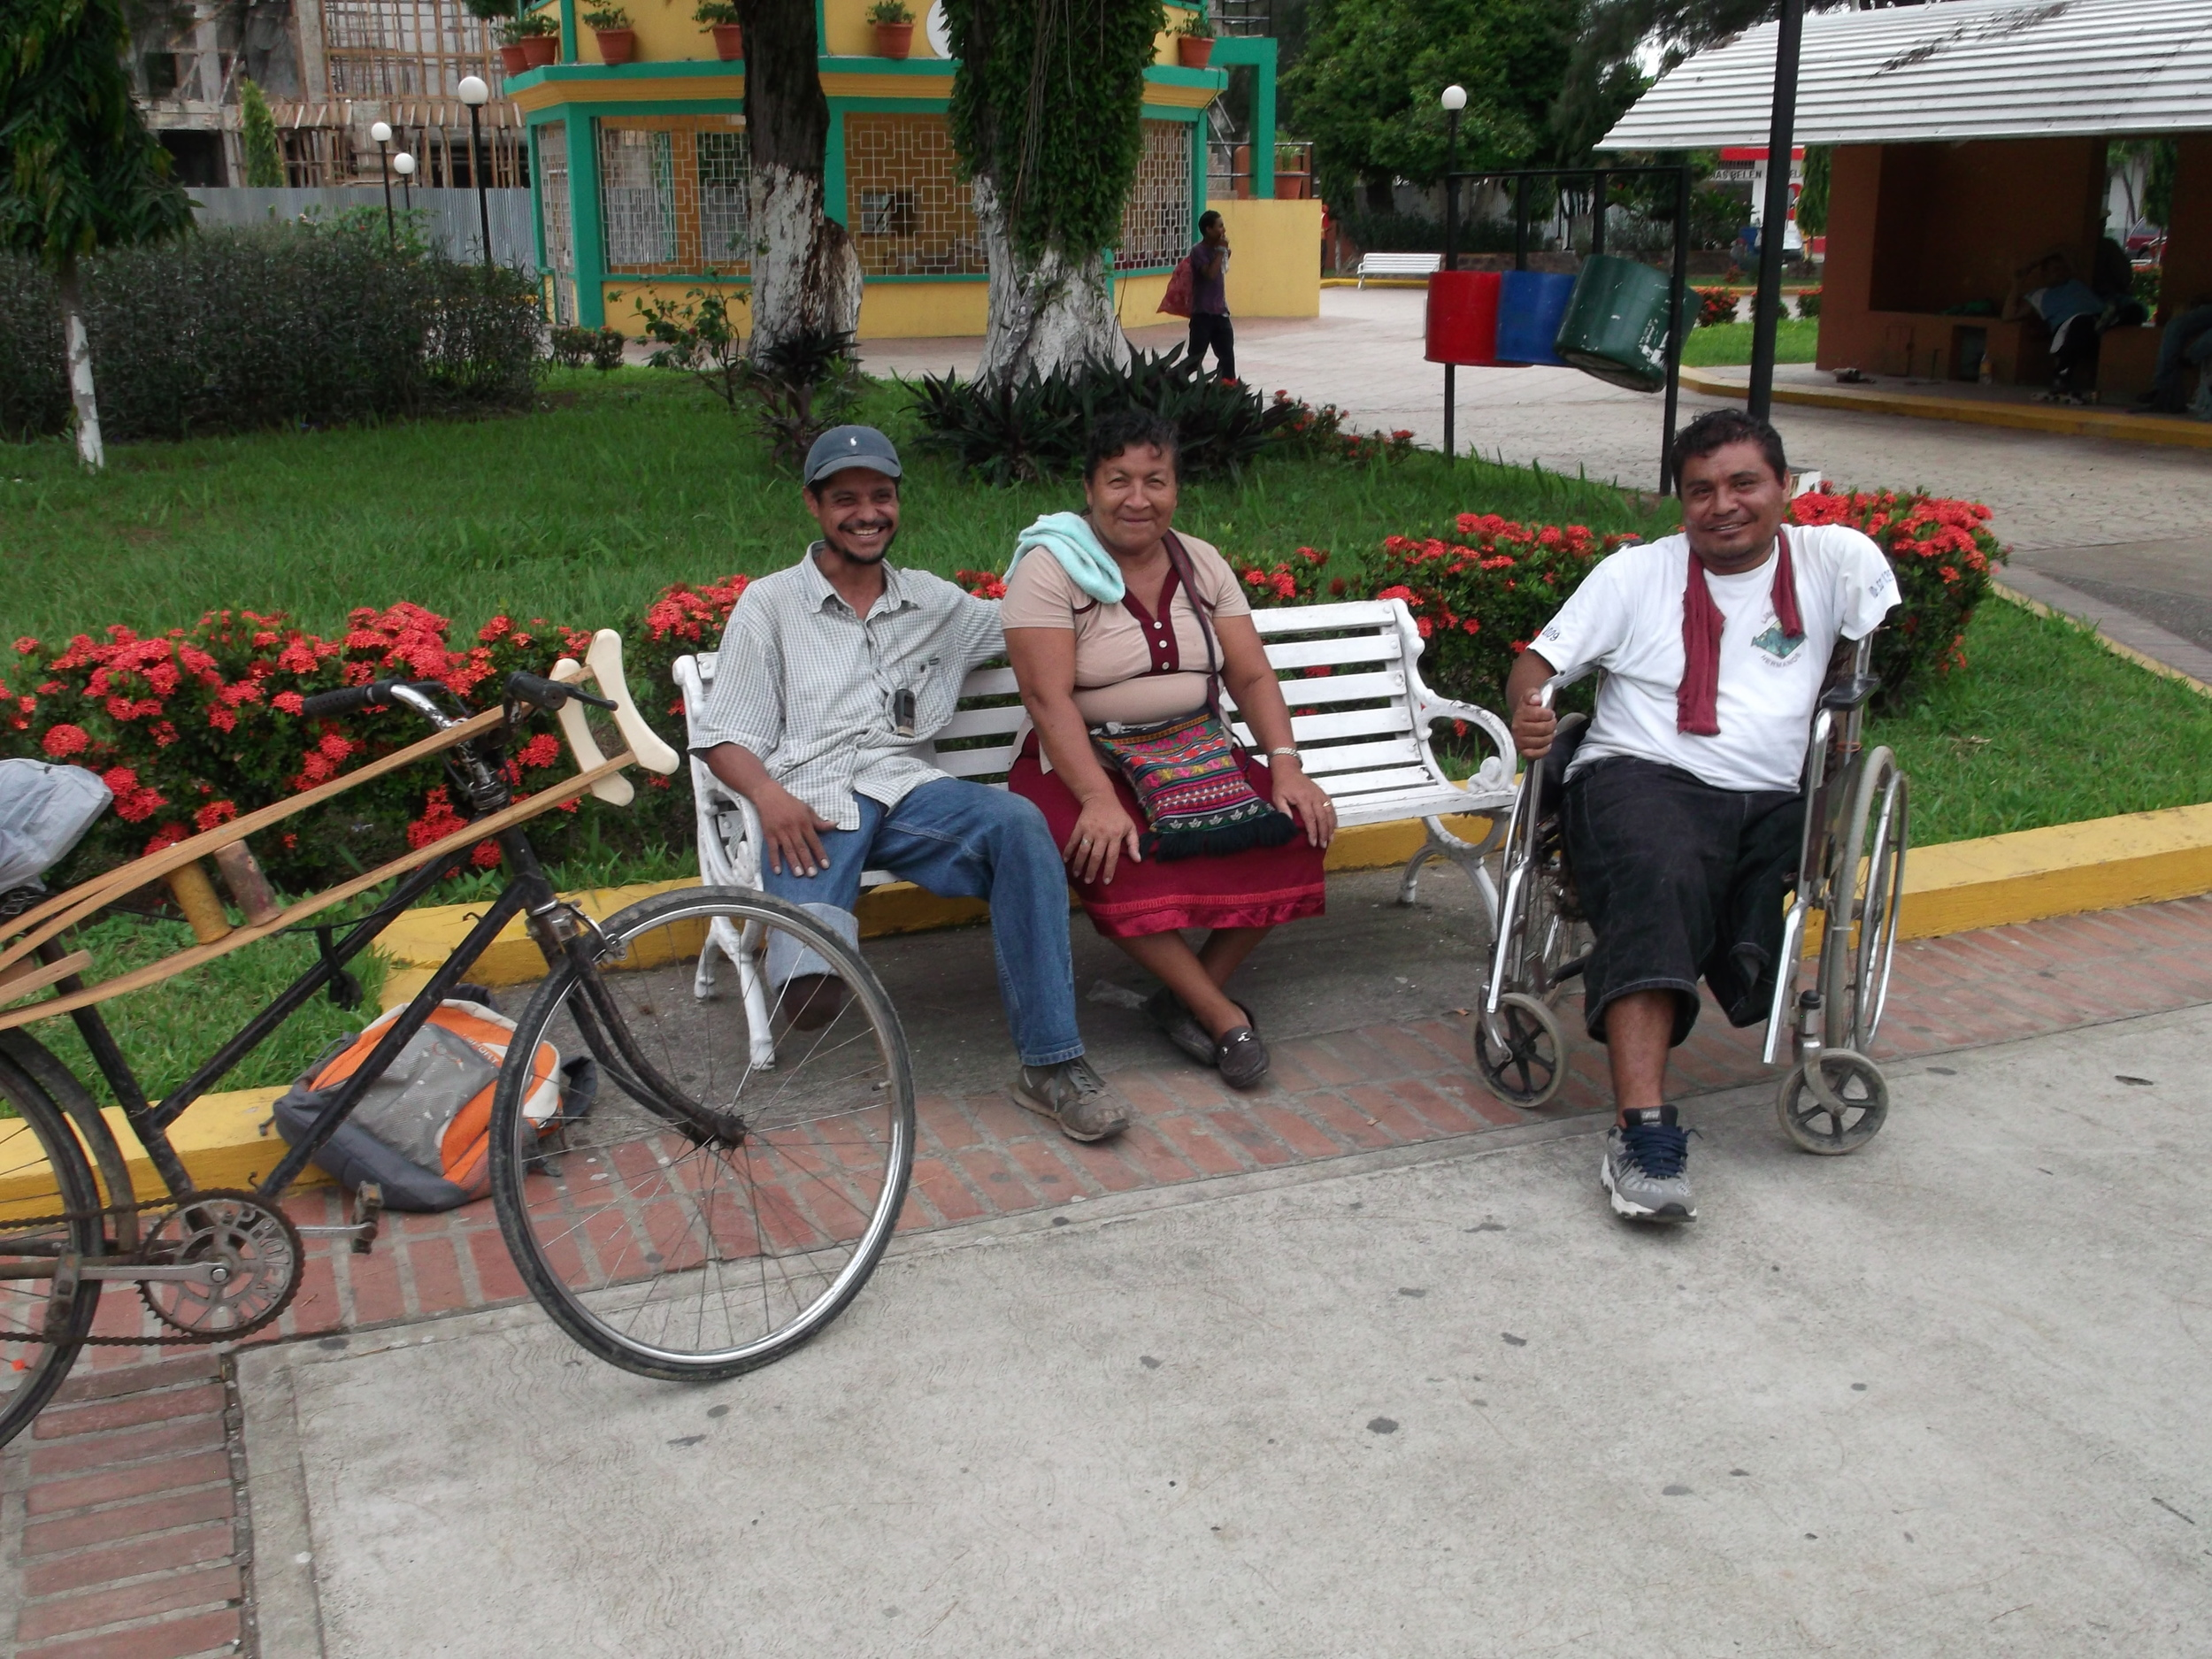 Three incredible people I met while doing research on migration issues in Honduras (Summer 2011)